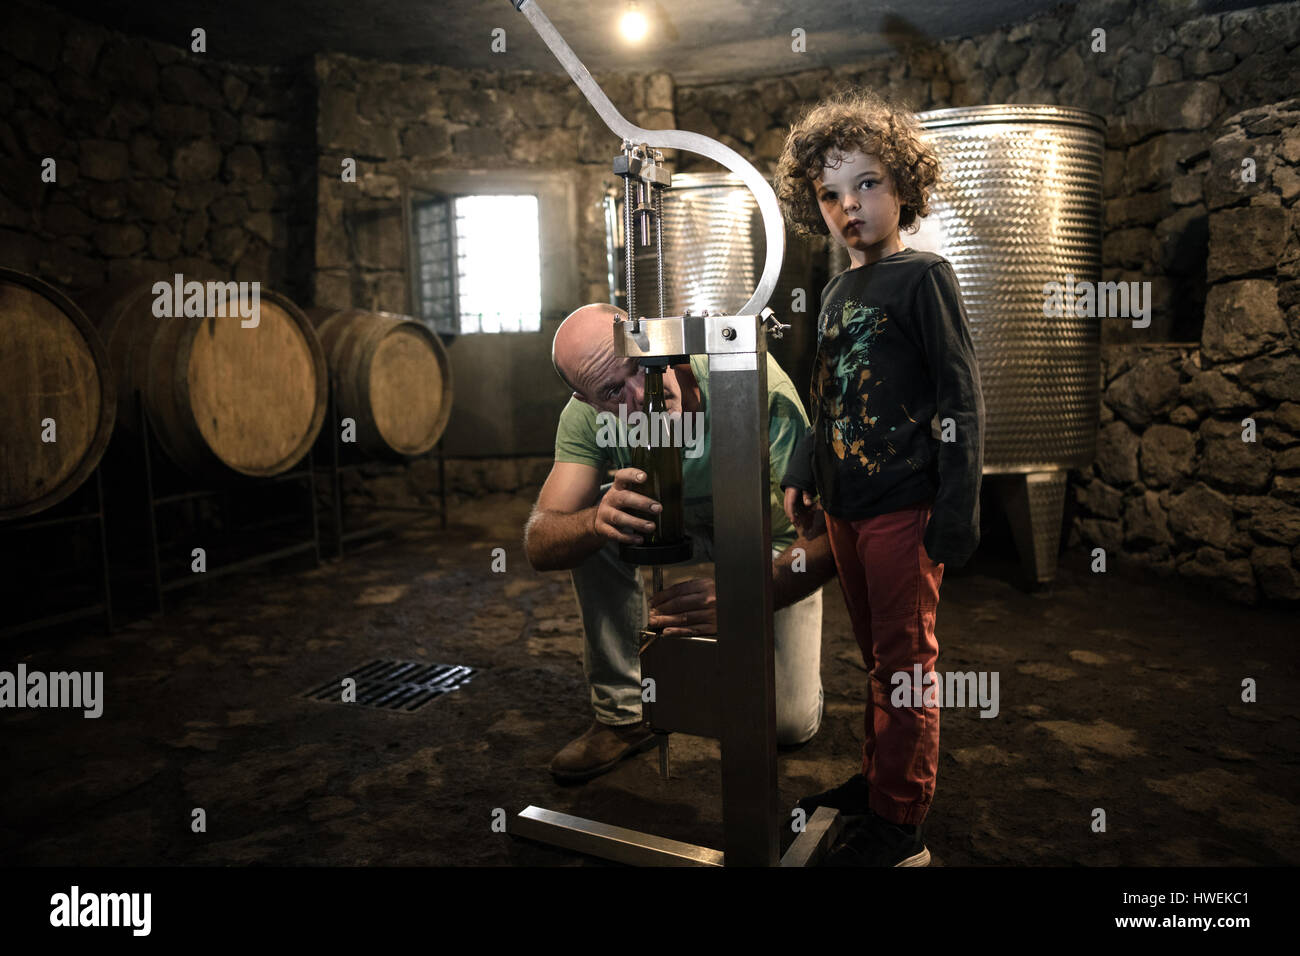 Boy with winemaker corking wine bottle in cellar - Stock Image